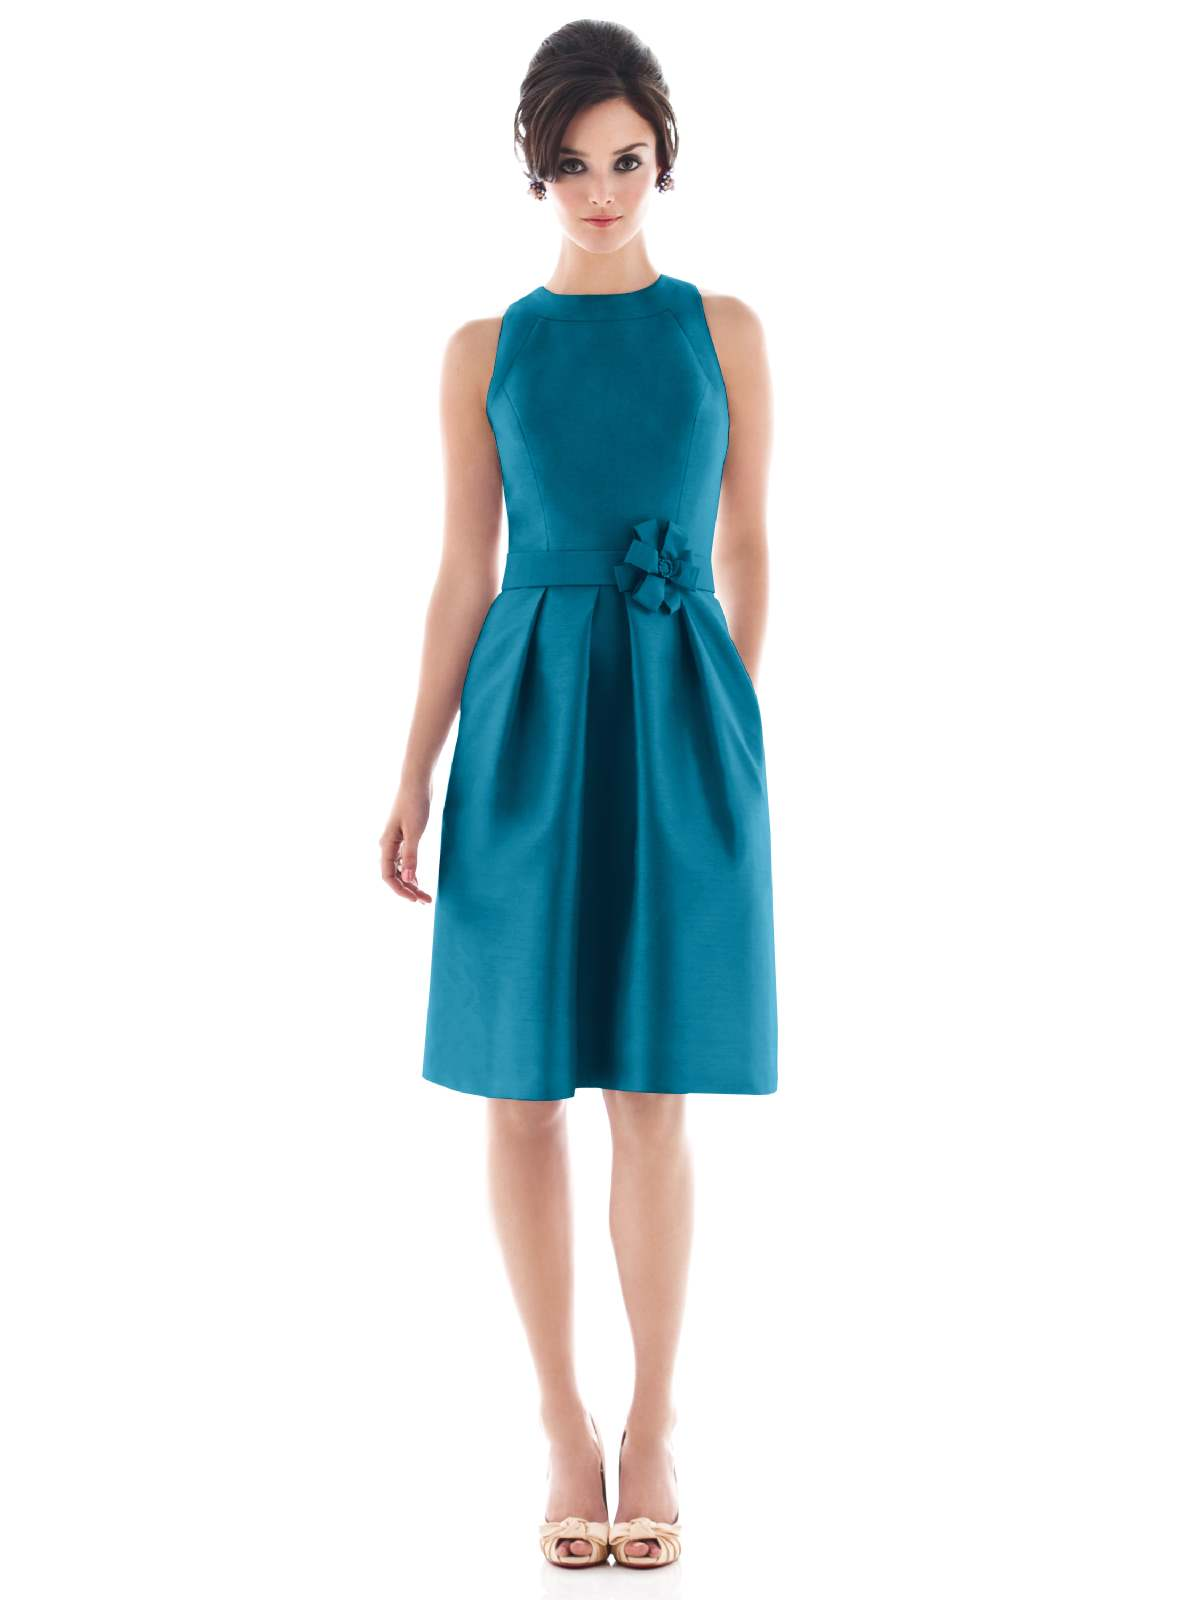 Teal A Line Jewel And Sleeveless Zipper Knee Length Satin Prom Dresses With Draped Skirt